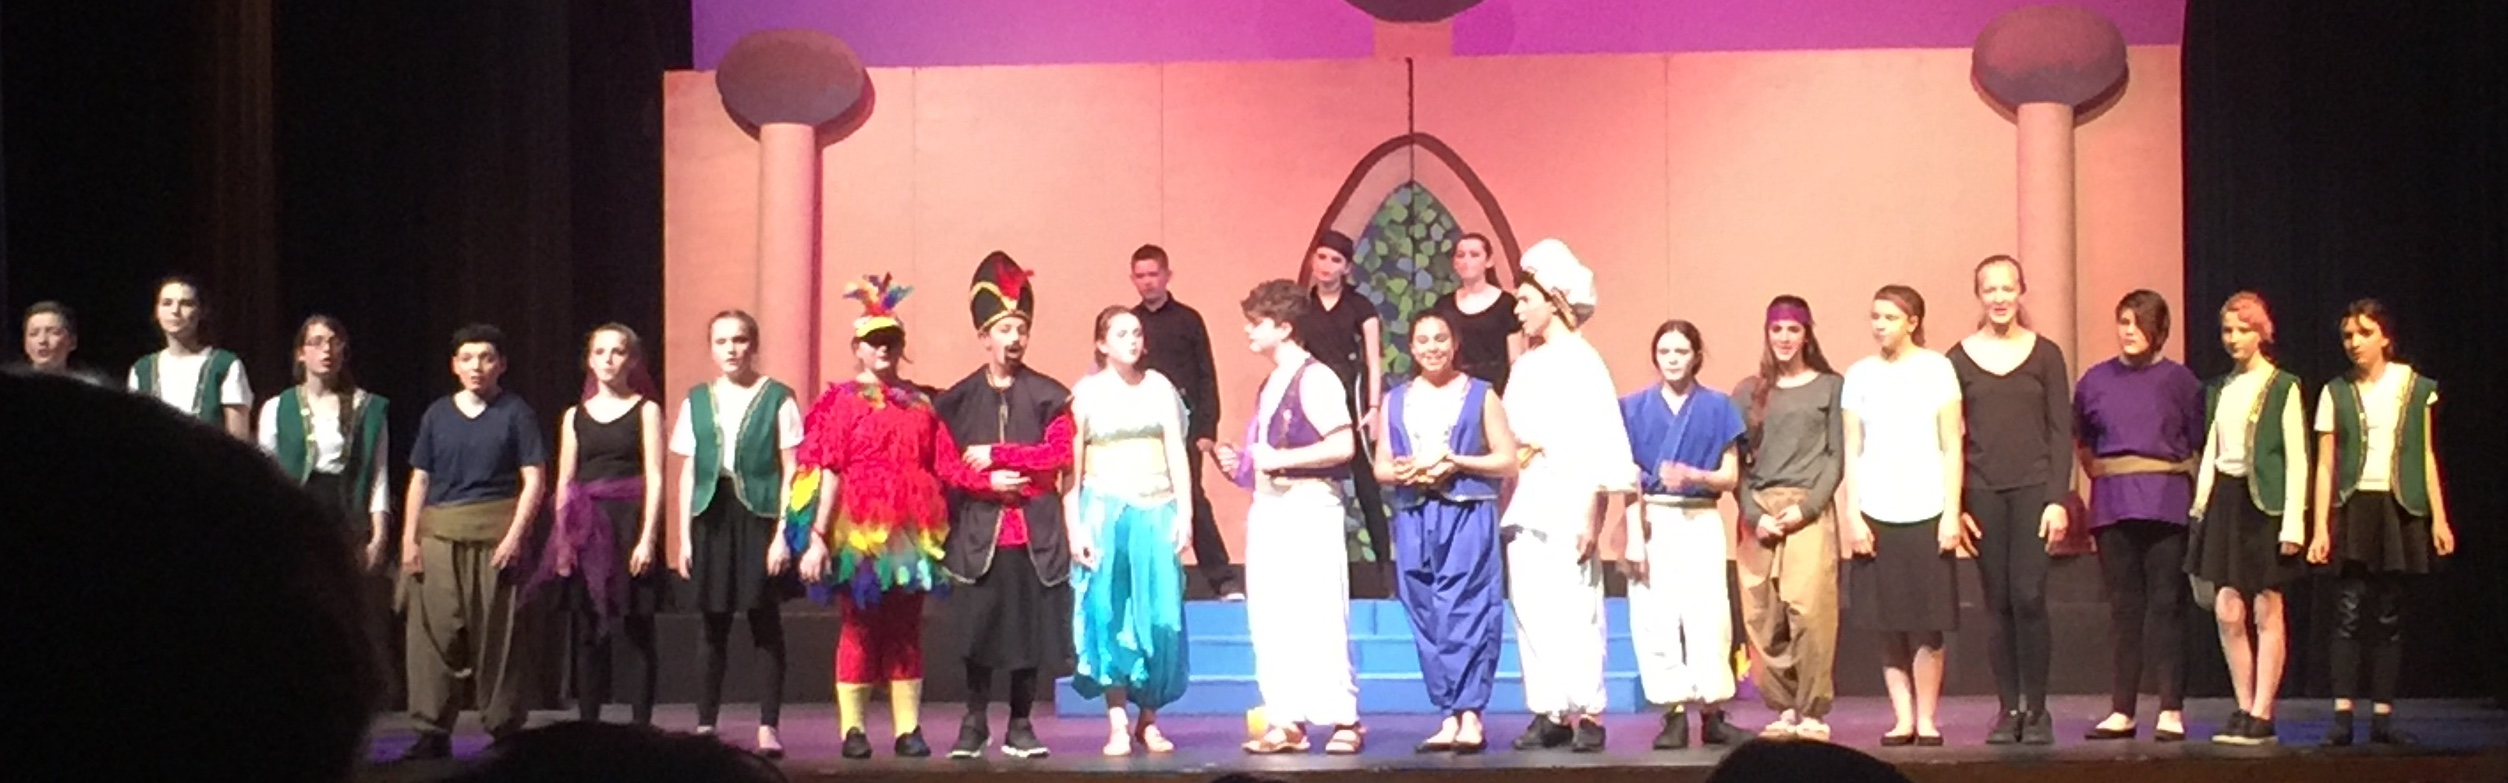 Middle School Drama Club Aladdin Production